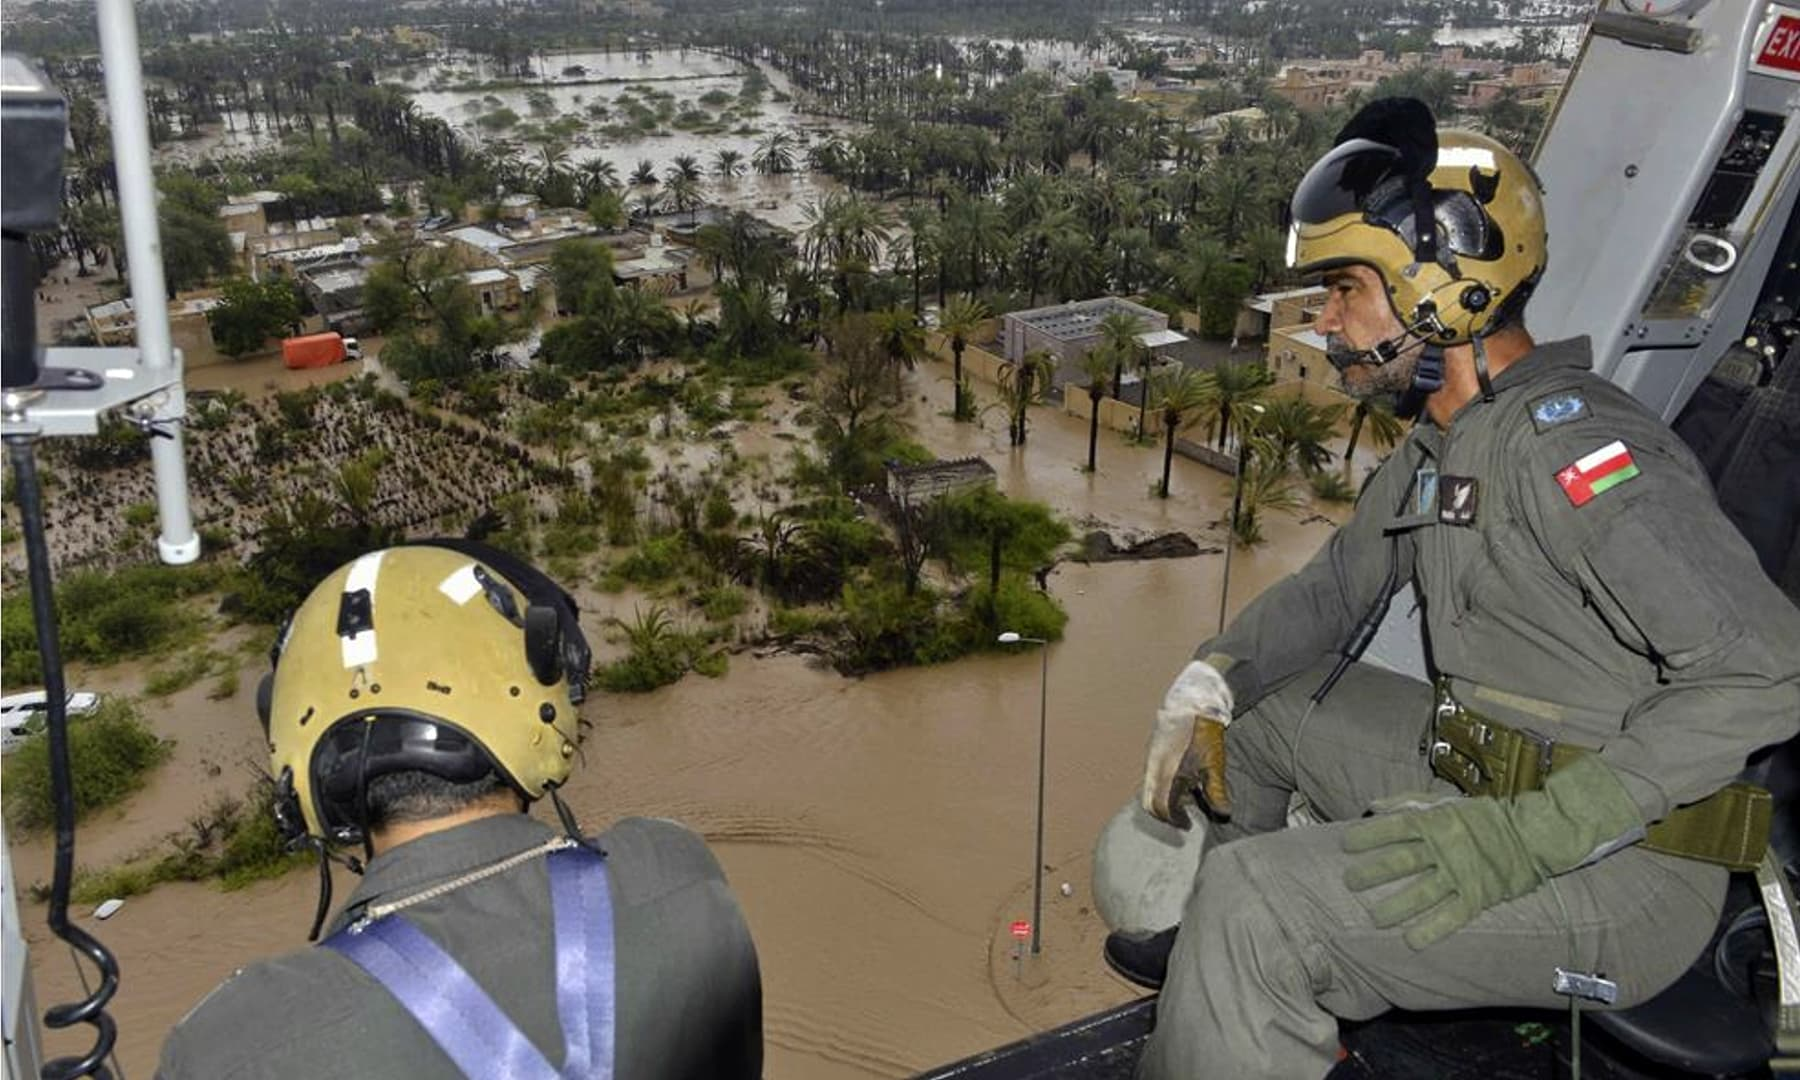 Oman Air Force personnel fly over the Al Khaburah district to assess damage from Cyclone Shaheen, in Oman, Monday, Oct 4. — Oman News Agency via AP